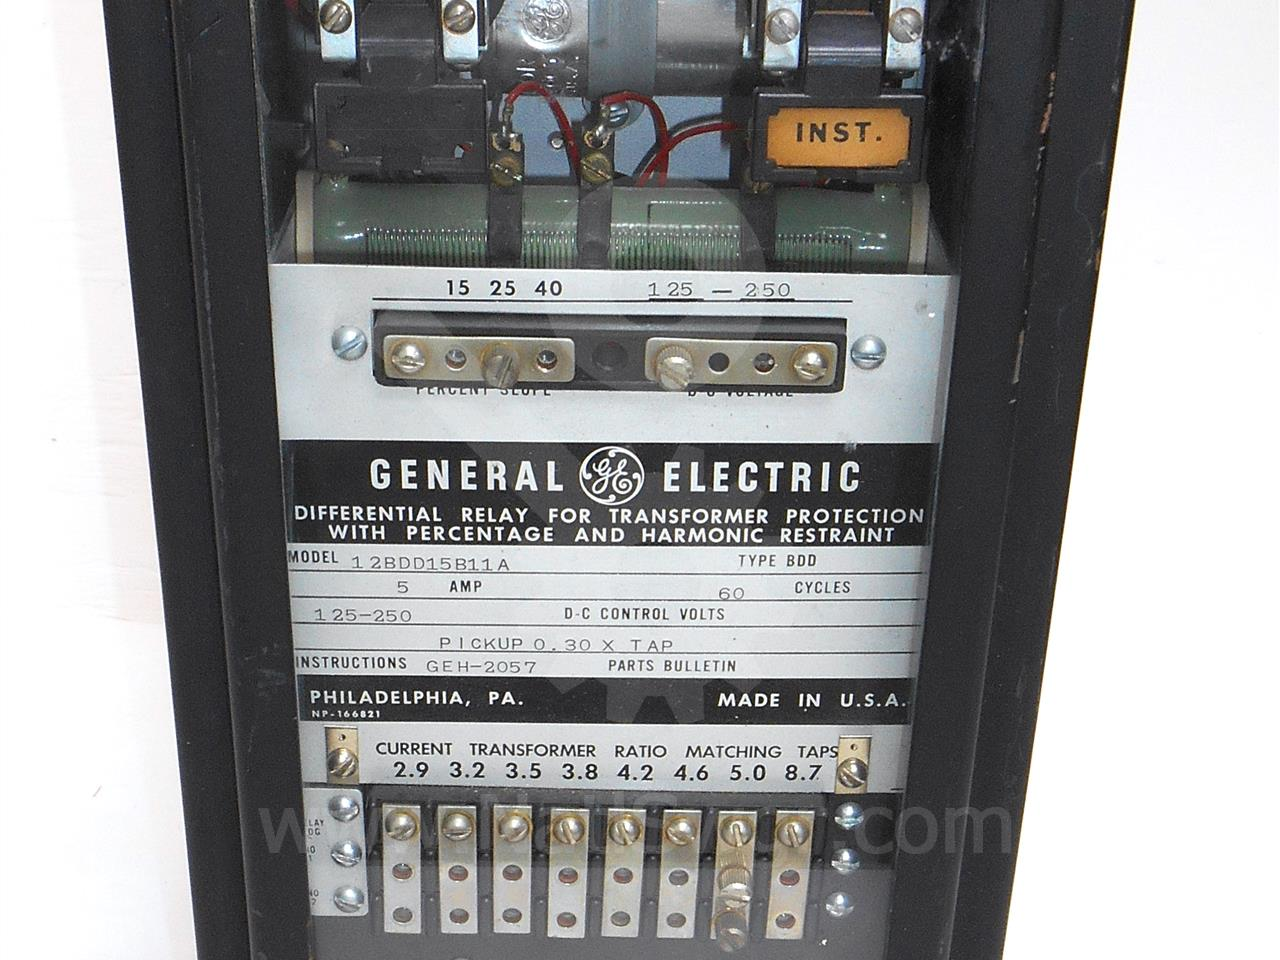 General Electric Ge Bdd Transformer Differential Relay For Electrical